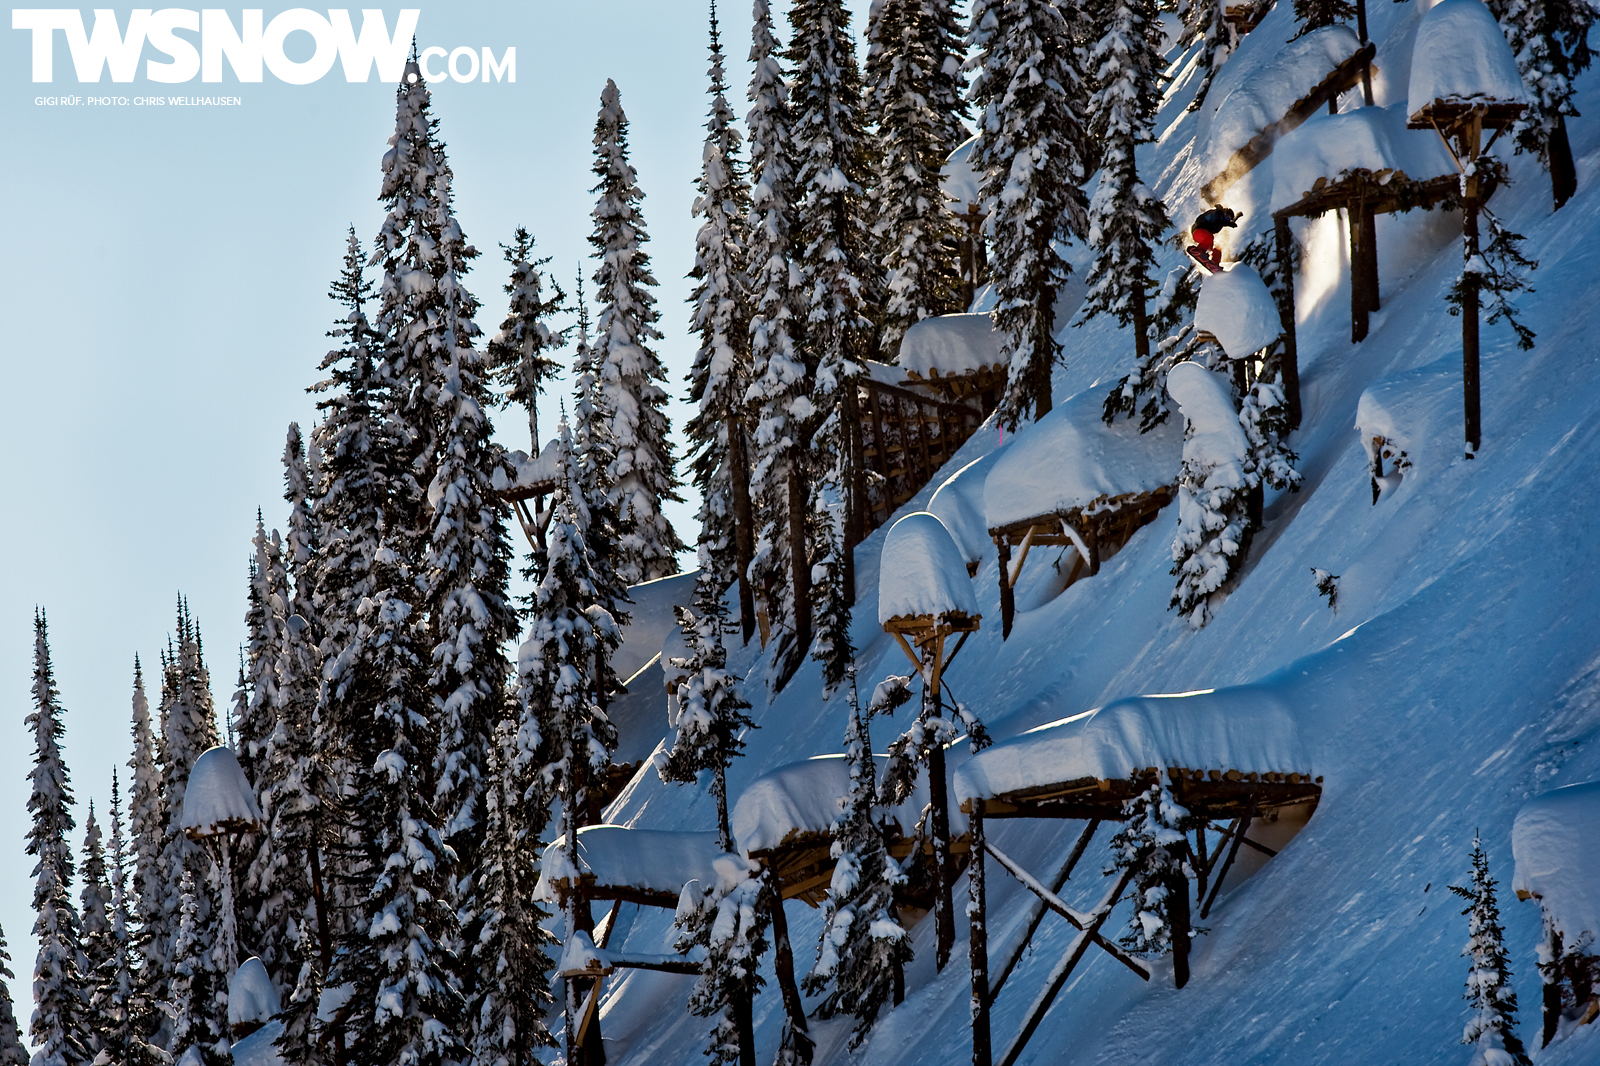 Wallpaper Wednesday No Triple Corks Here TransWorld SNOWboarding 1600x1066